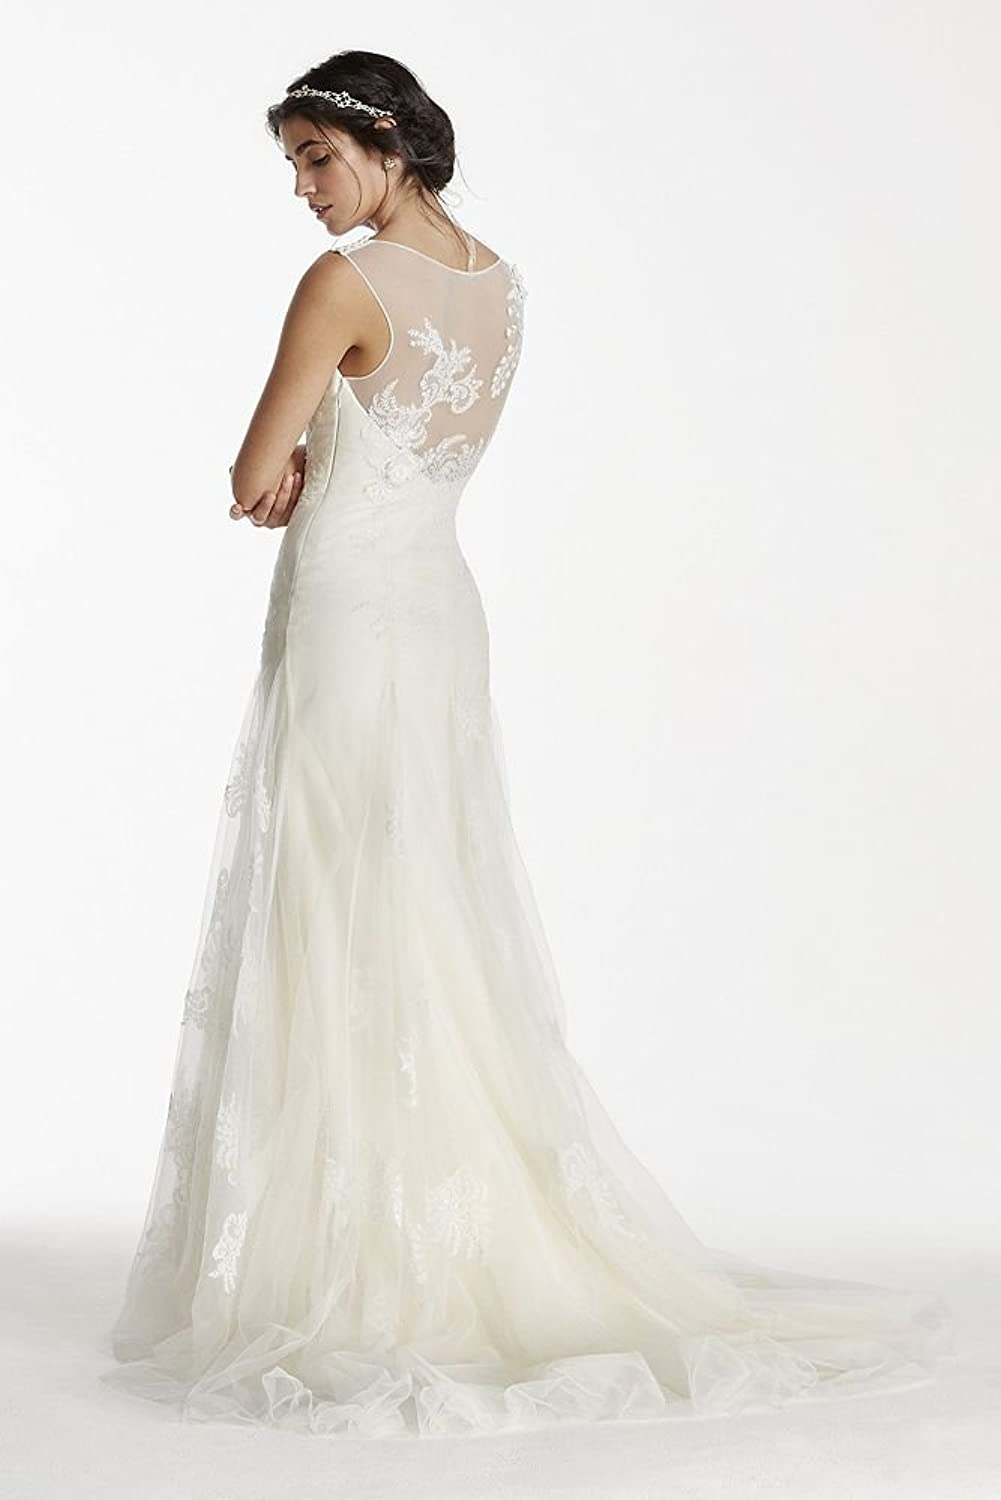 Davids Bridal Melissa Sweet Tank Tulle Wedding Dress With Beads Style MS251114 At Amazon Womens Clothing Store